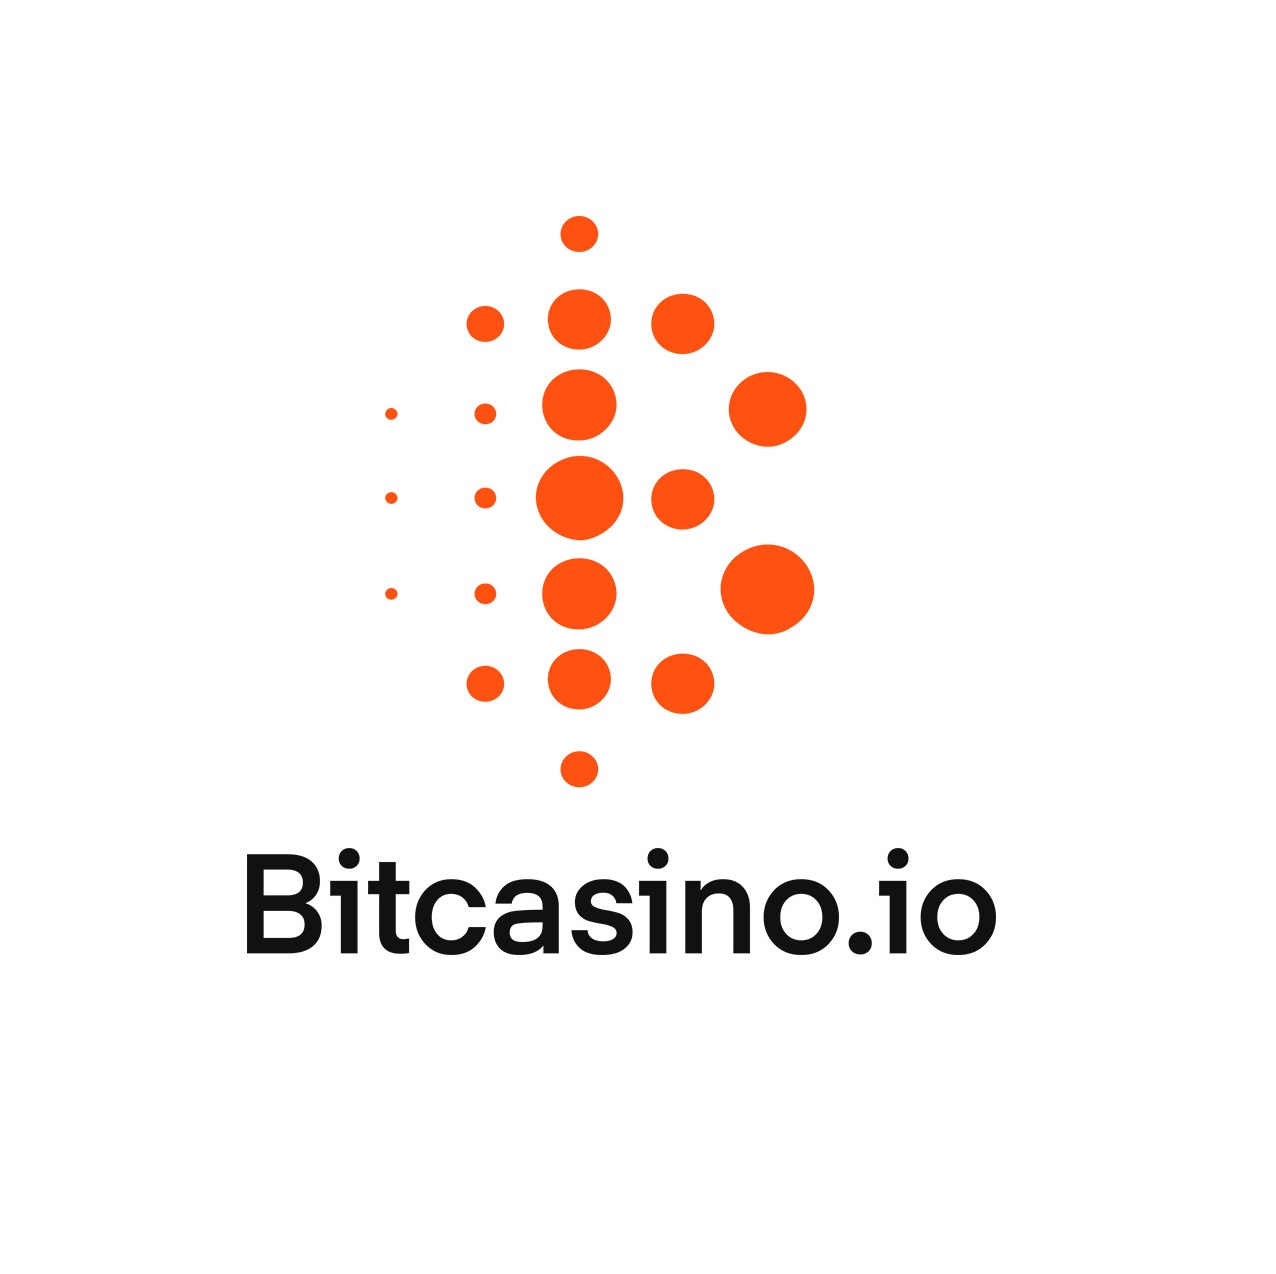 Bitcasino logo with the B letter formed by dots